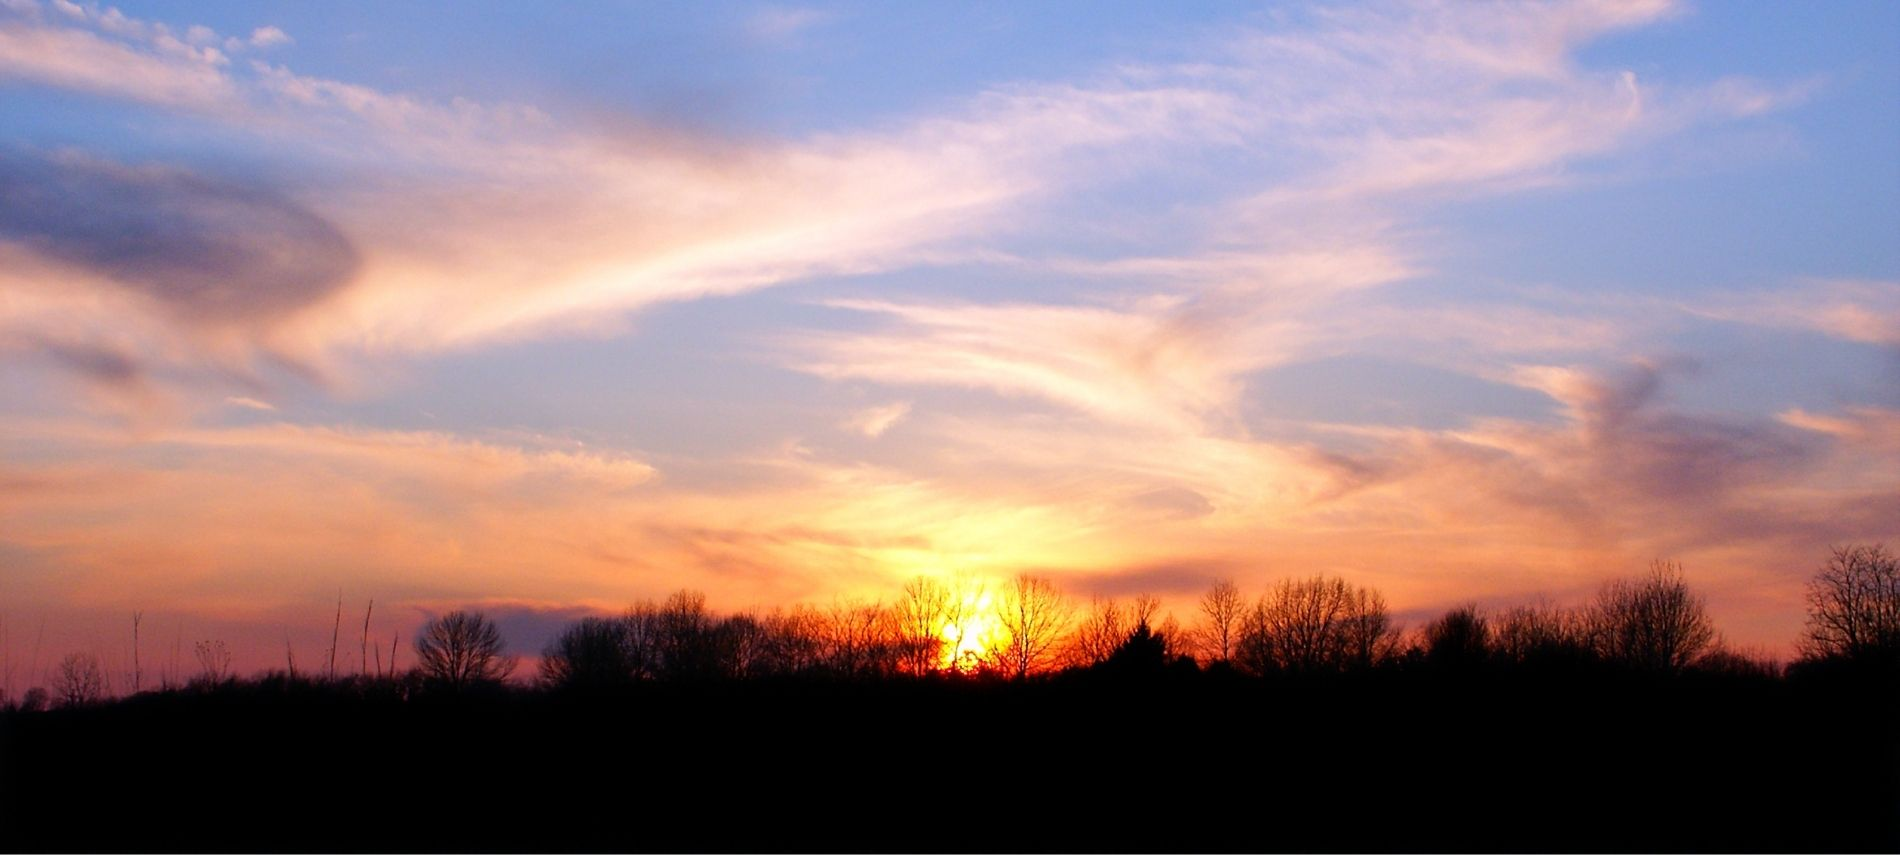 Gorgeous sunset in the IL countryside